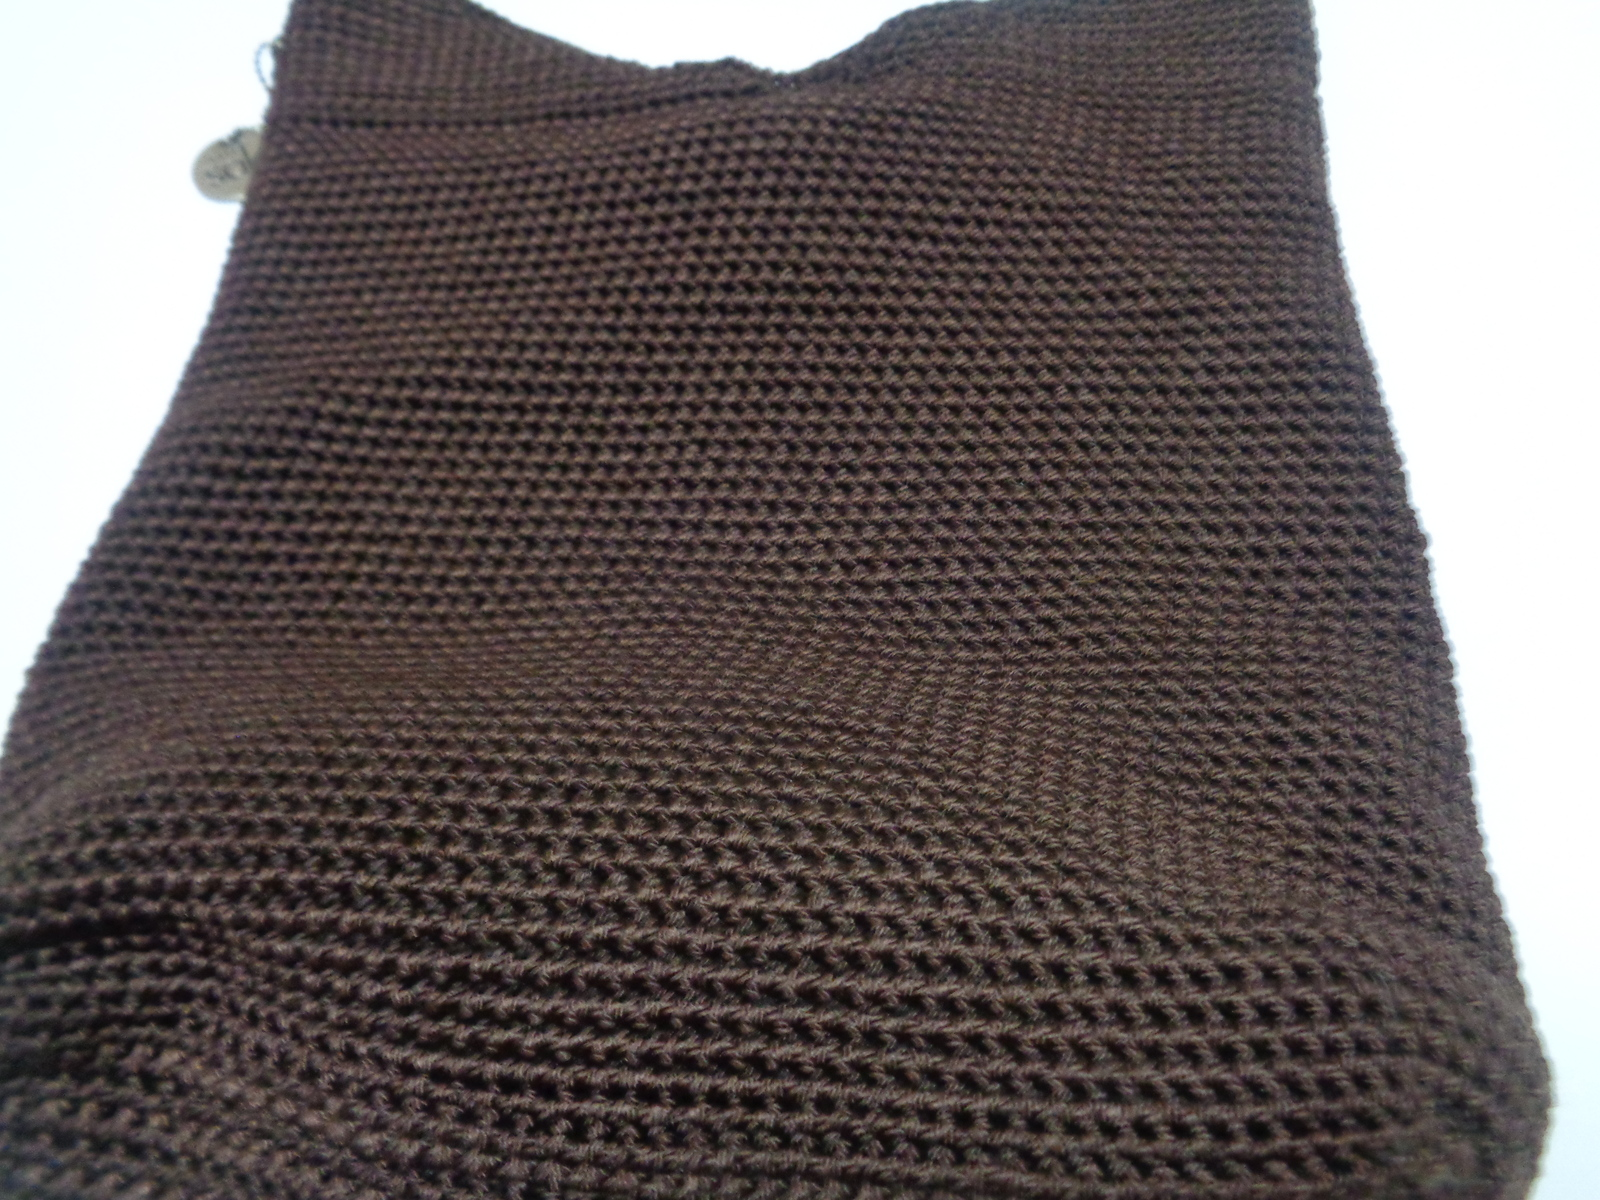 THE SAK Chocolate Brown Crochet Shoulder Handbag Purse NWOT